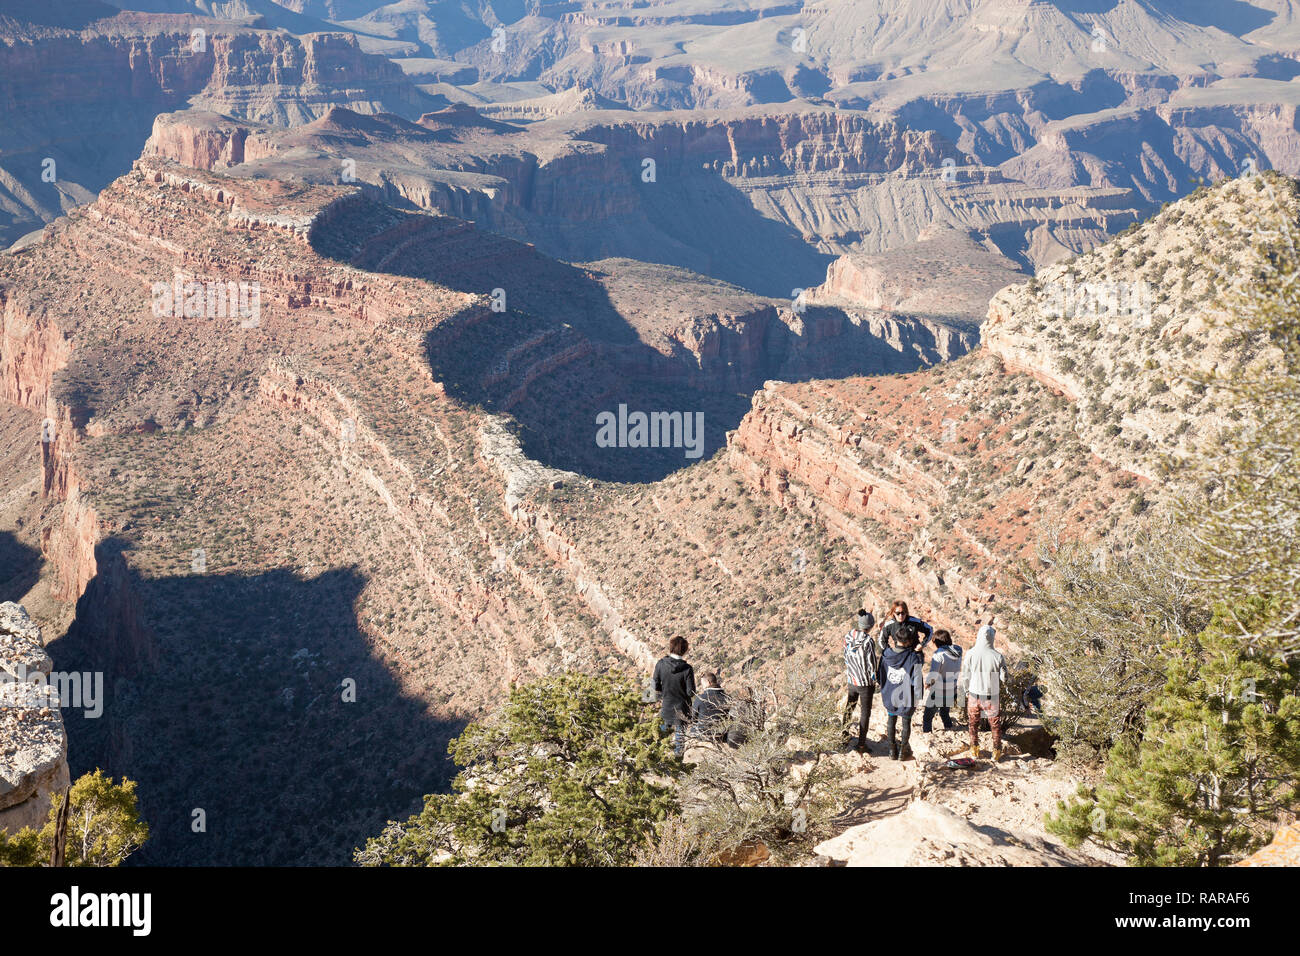 hikers along the Grandview Trail in Grand Canyon National Park SouthRim - Stock Image